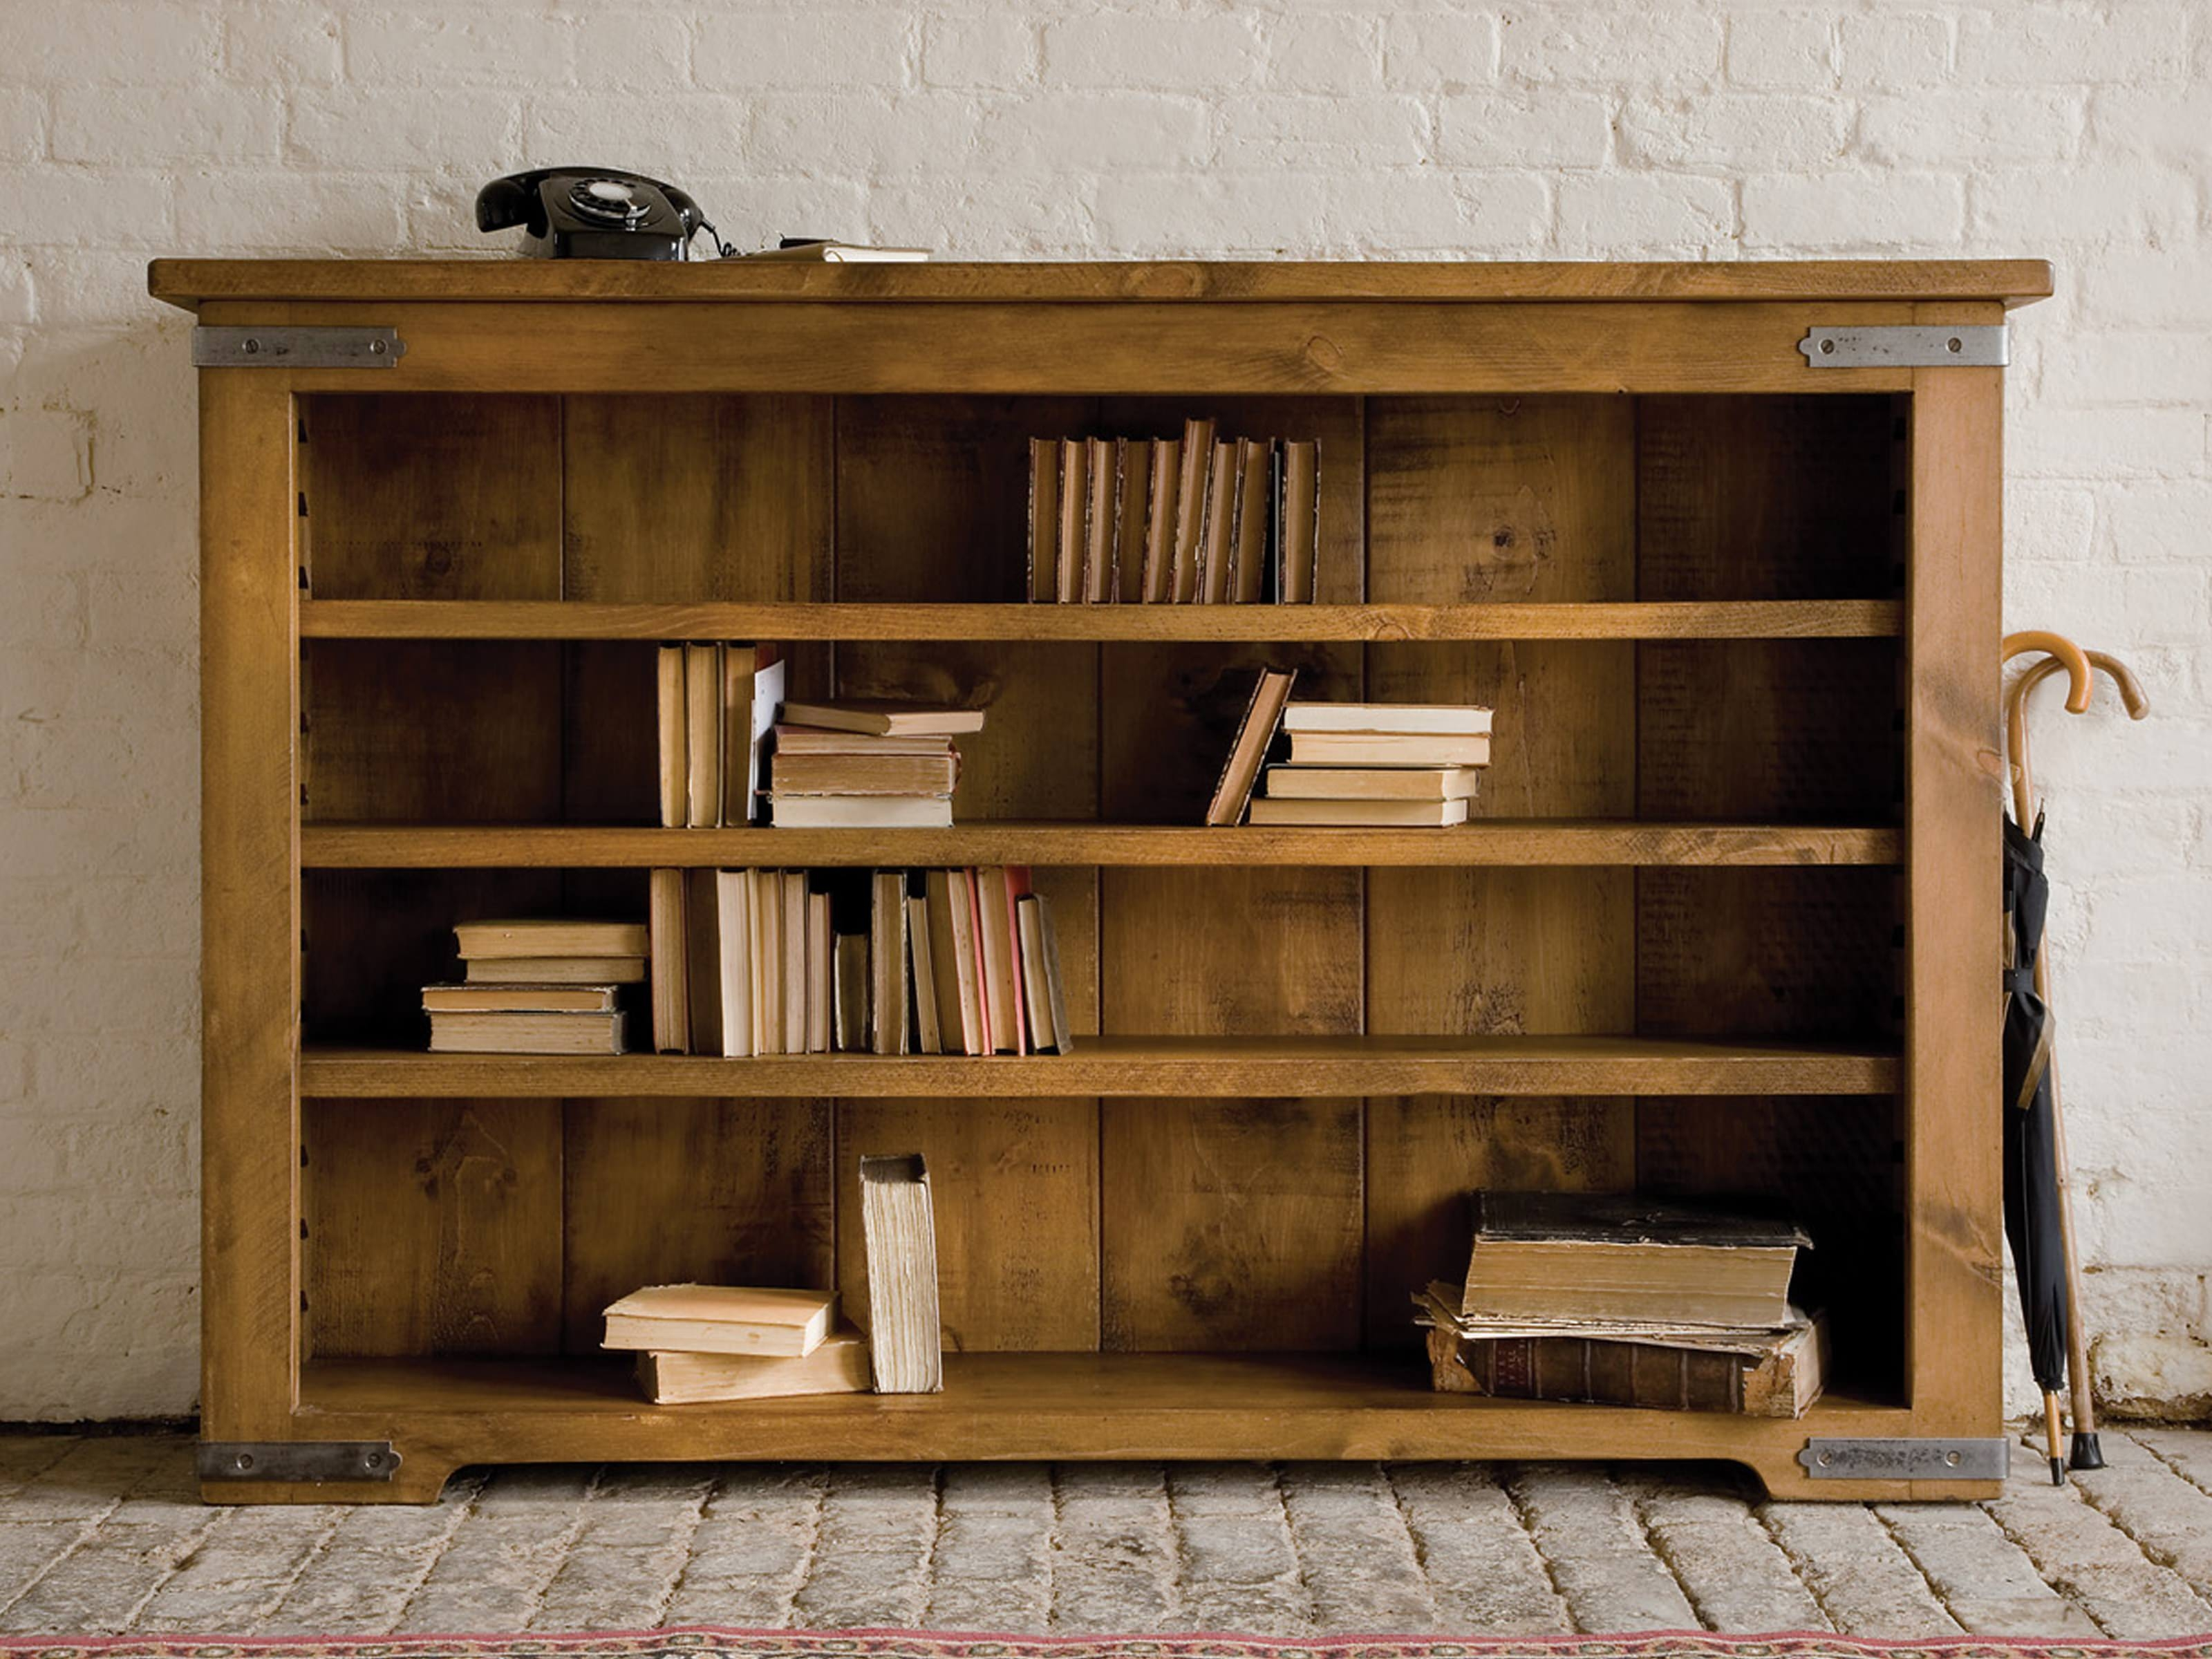 Terrific Unfinished Oak Low Bookcase Over Stones Floors And White Pertaining To Oak Bookshelves (#15 of 15)